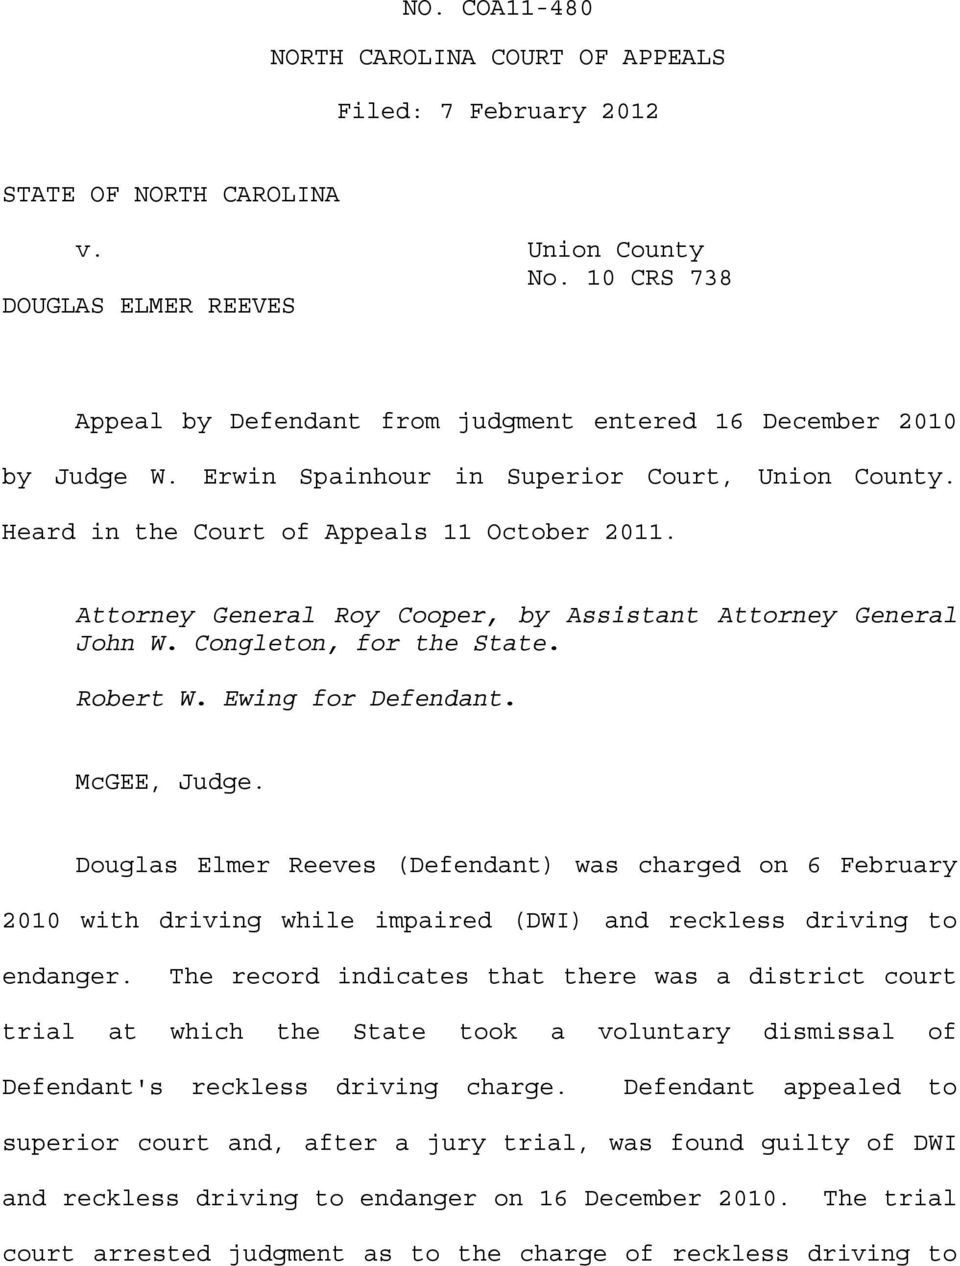 Attorney General Roy Cooper, by Assistant Attorney General John W. Congleton, for the State. Robert W. Ewing for Defendant. McGEE, Judge.